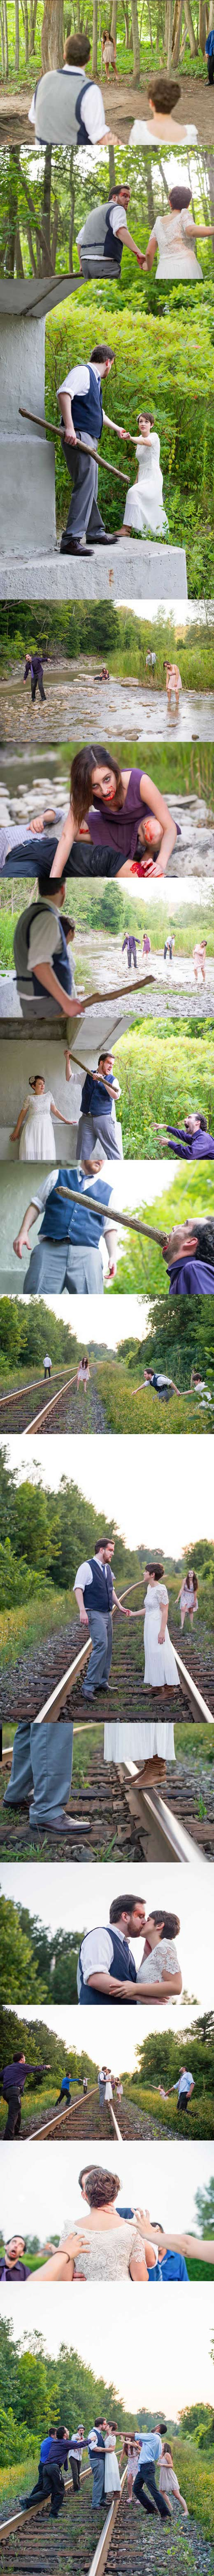 funny-wedding-session-zombie-costume